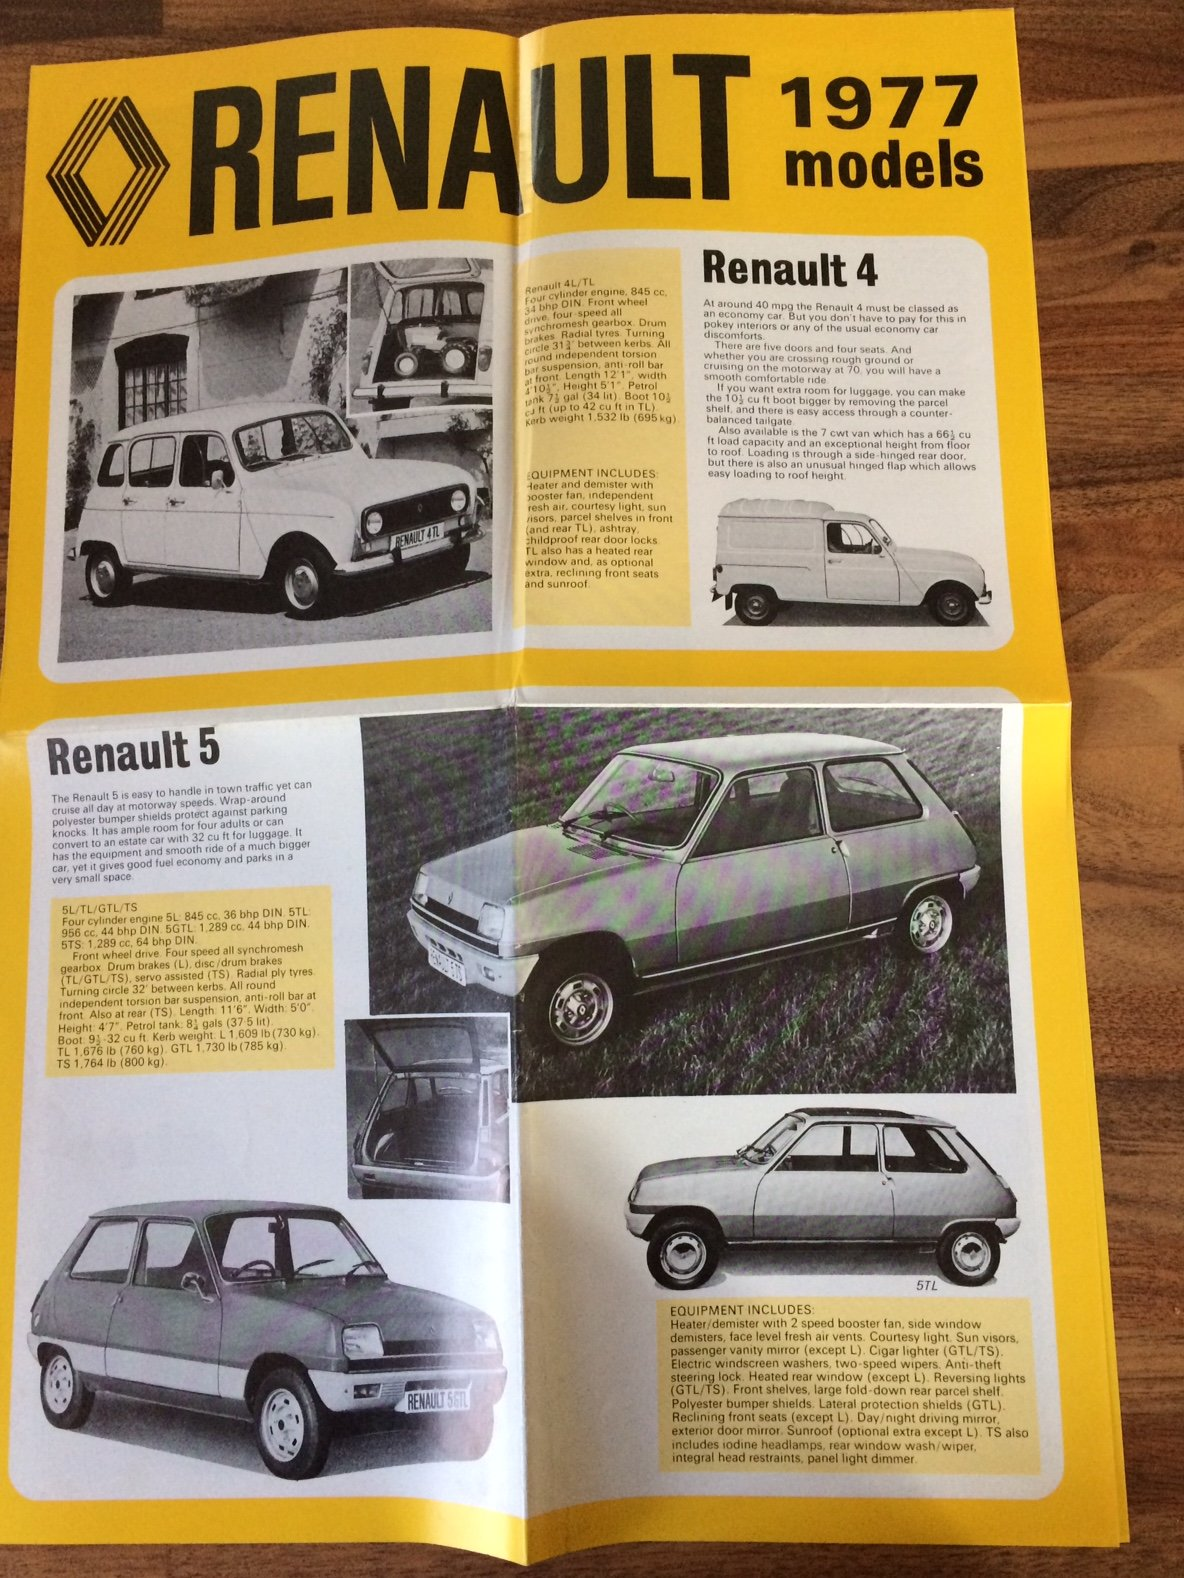 1977 Renault fold-out pamphlet For Sale (picture 1 of 3)